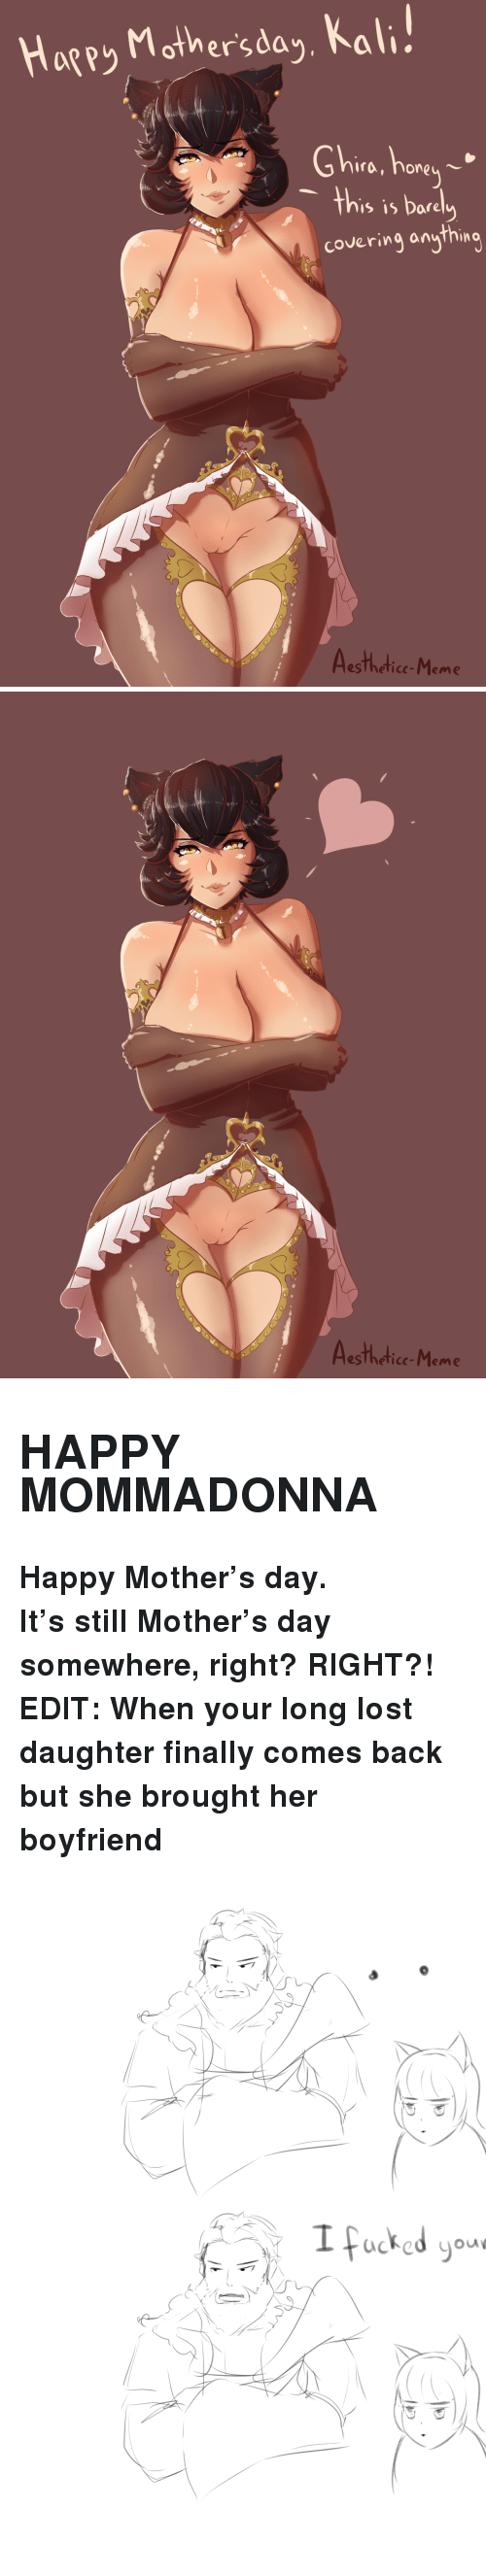 """Hore: Hagey Mother'sda,, Kal  Ghire, hore  's is Dare  covering anything  esTheticc-Meme   Aesthedice-Meme <h2><b>HAPPY MOMMADONNA</b></h2><p><b>Happy Mother's day.</b></p><p><b>It's still Mother's day somewhere, right? RIGHT?!</b></p><p><b>EDIT: When your long lost daughter finally comes back but she brought her boyfriend</b></p><figure class=""""tmblr-full"""" data-orig-height=""""2994"""" data-orig-width=""""2480""""><img src=""""https://78.media.tumblr.com/96786384d4e49eb02ee01438d2ad255e/tumblr_inline_p8qdxsGKwz1sdoznj_540.png"""" data-orig-height=""""2994"""" data-orig-width=""""2480""""/></figure>"""